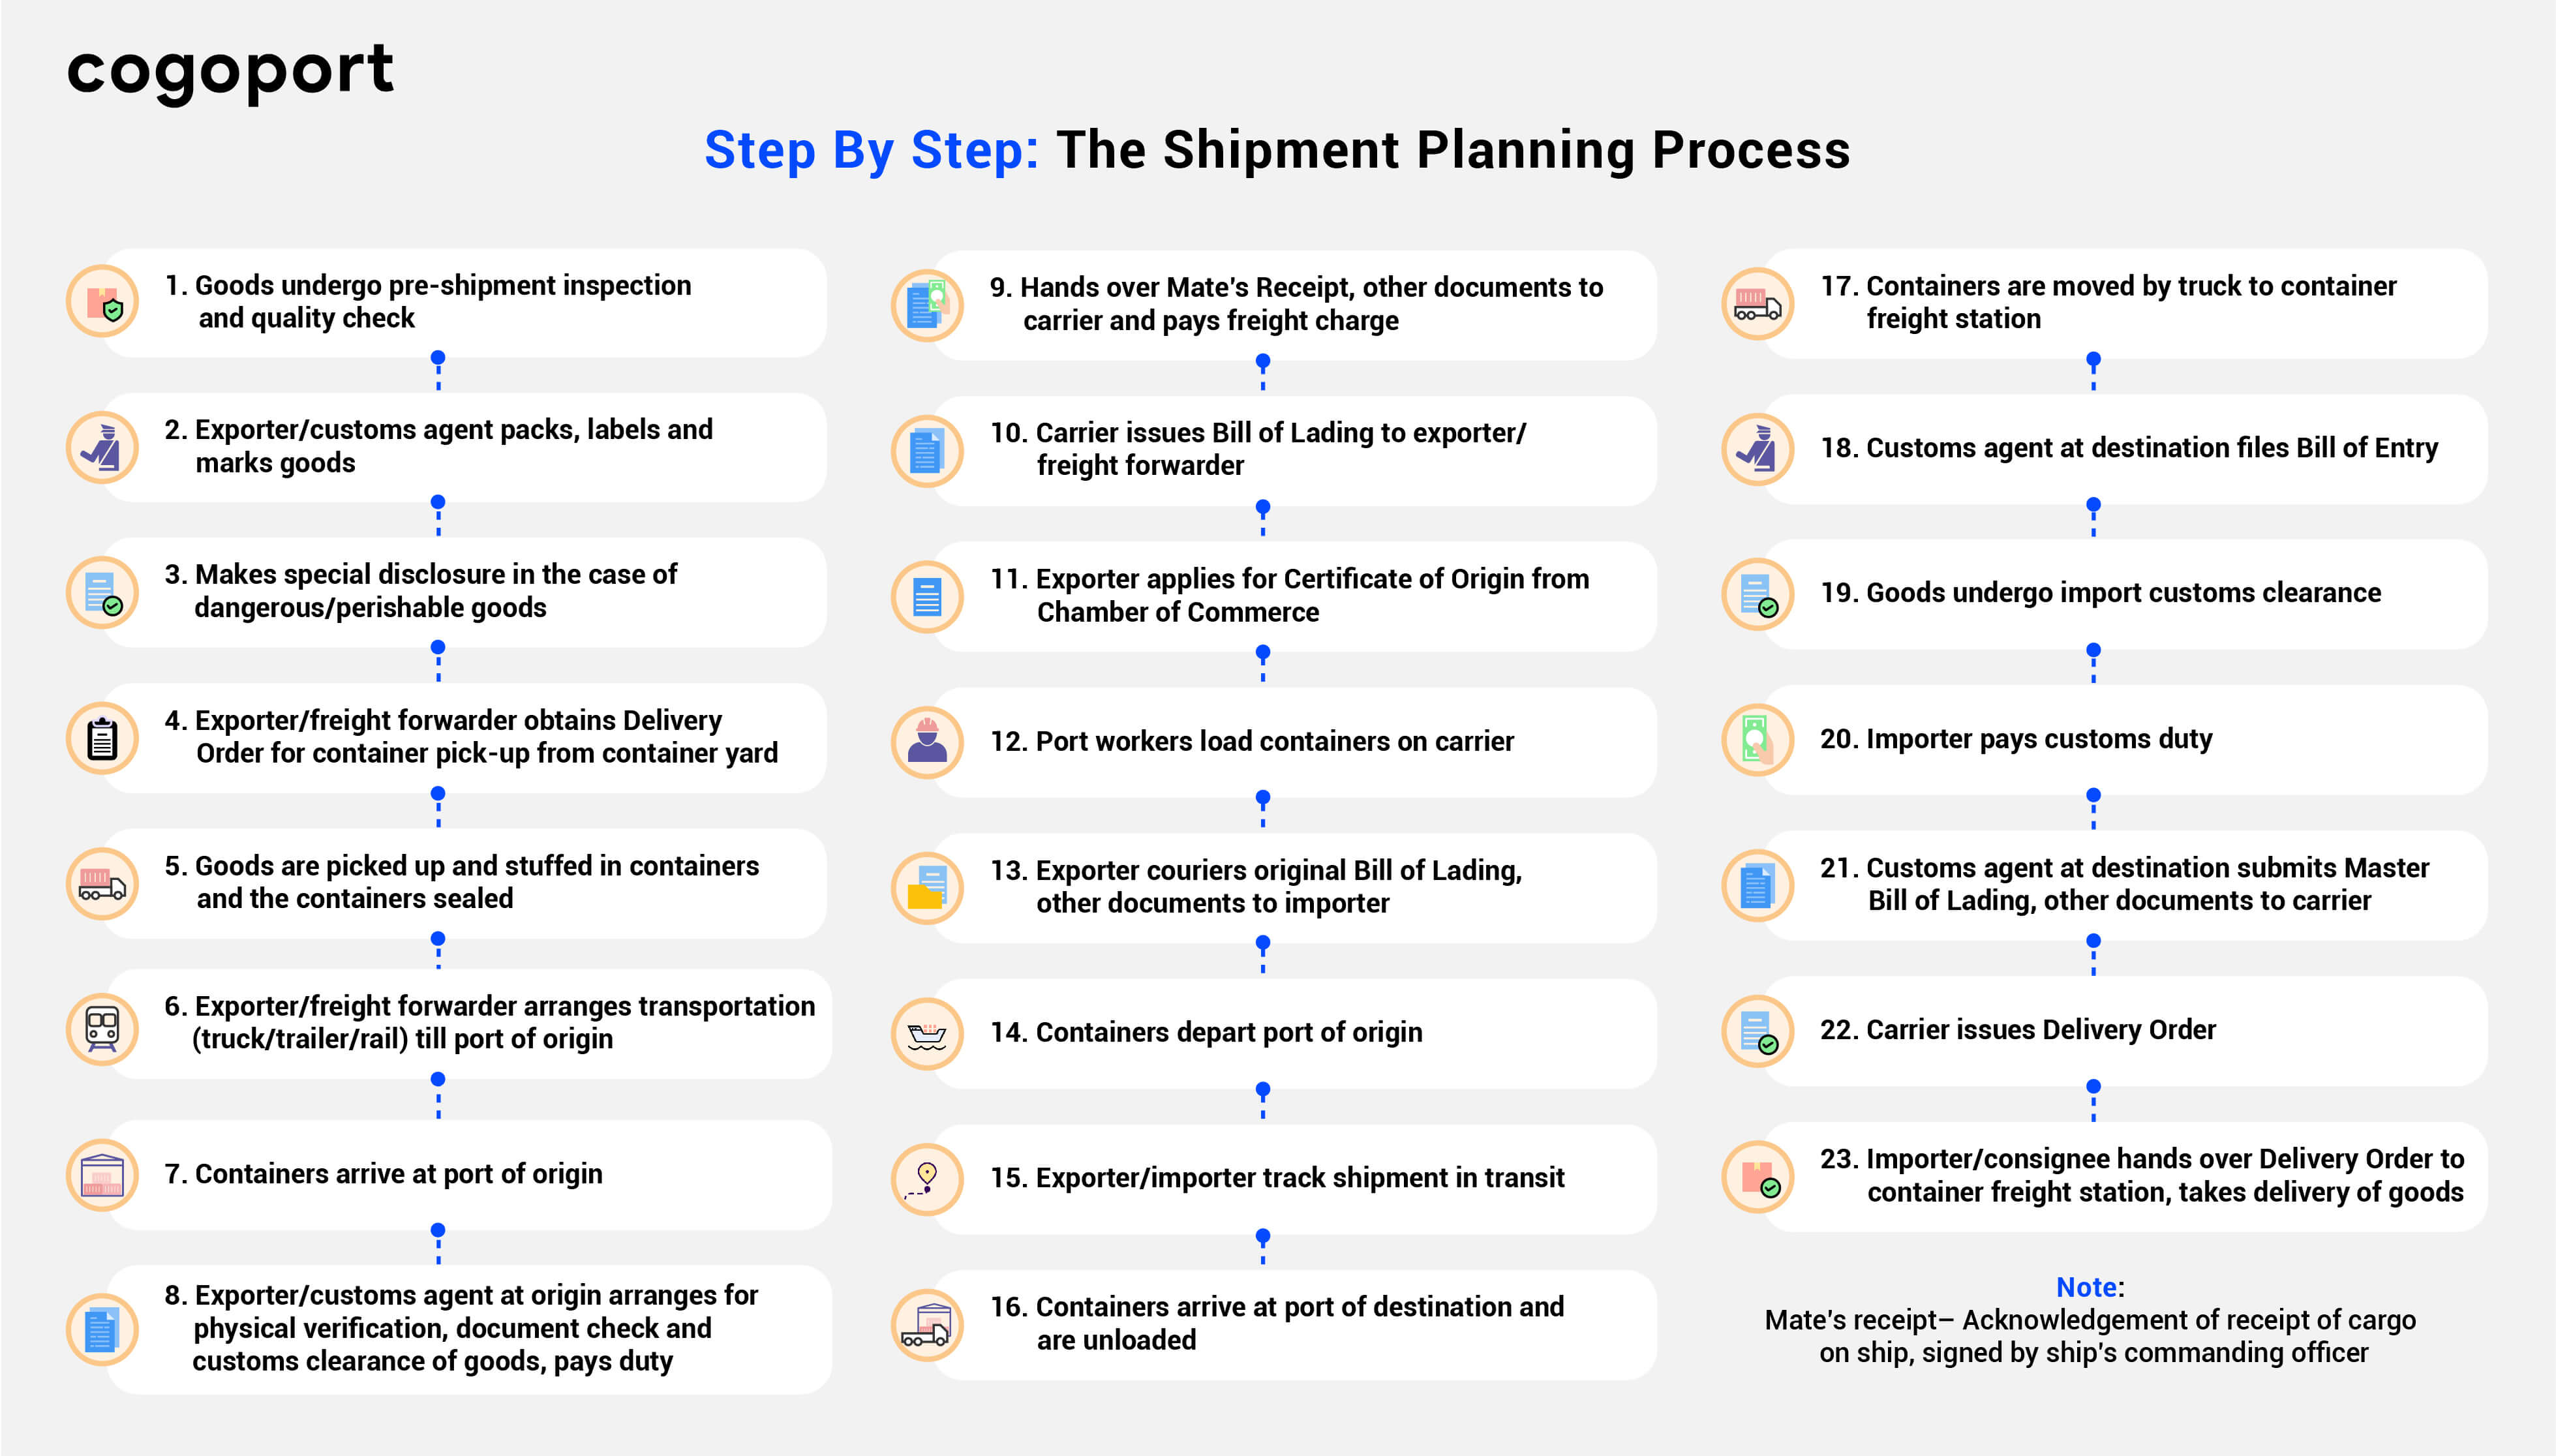 Step by Step Shipment Planning Process